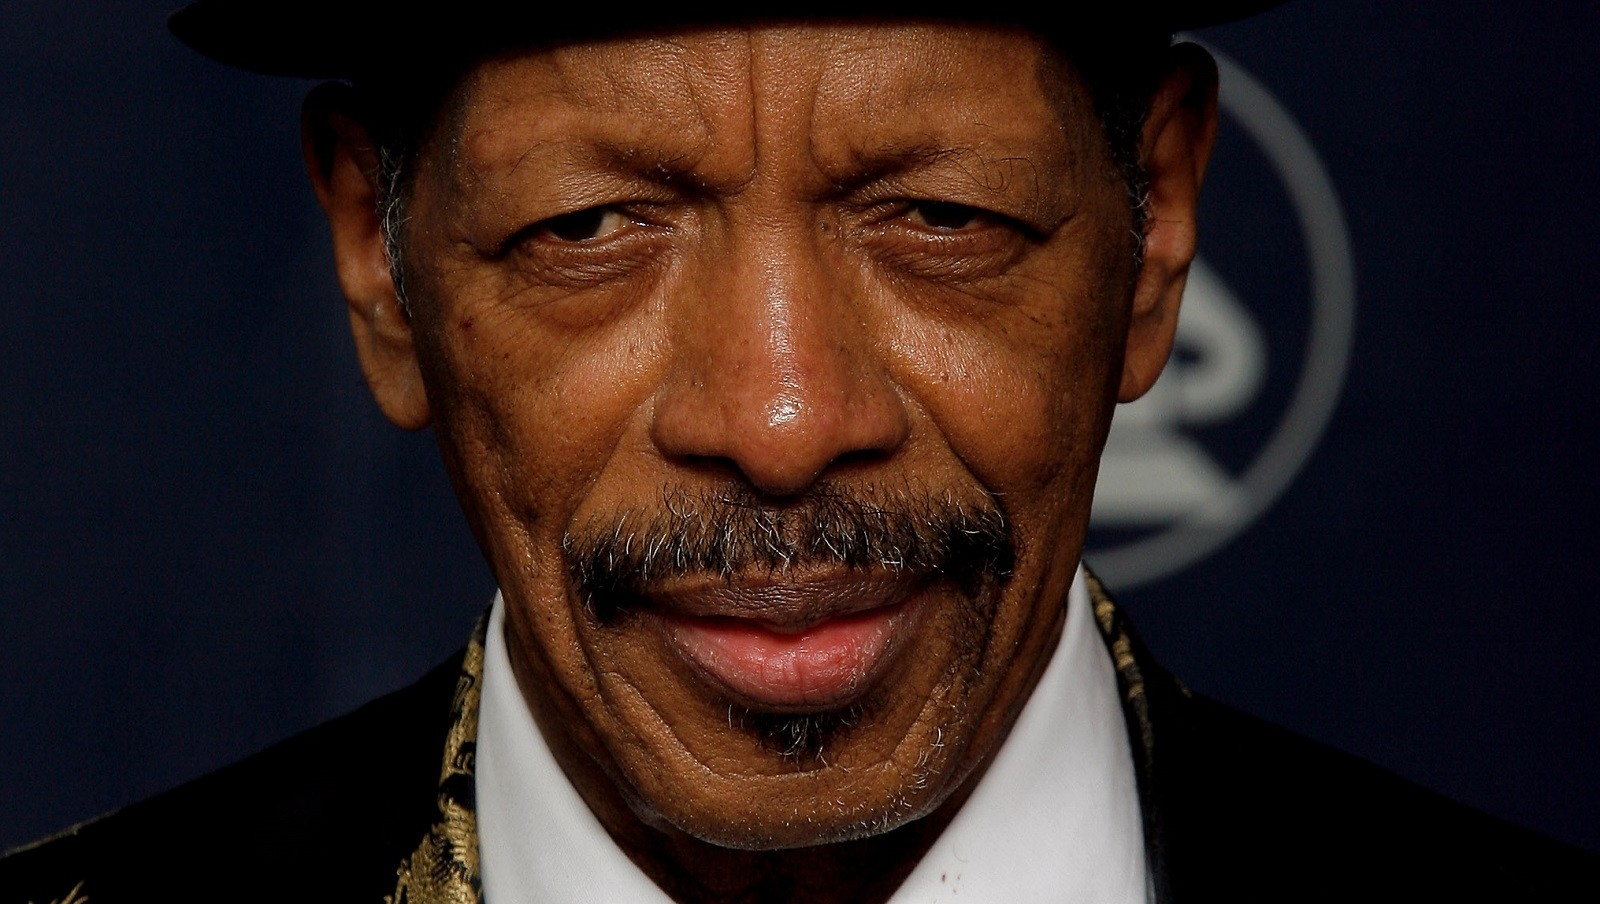 Jeff Simon pens a tribute to one of his favorites, Ornette Coleman. (Getty Images)